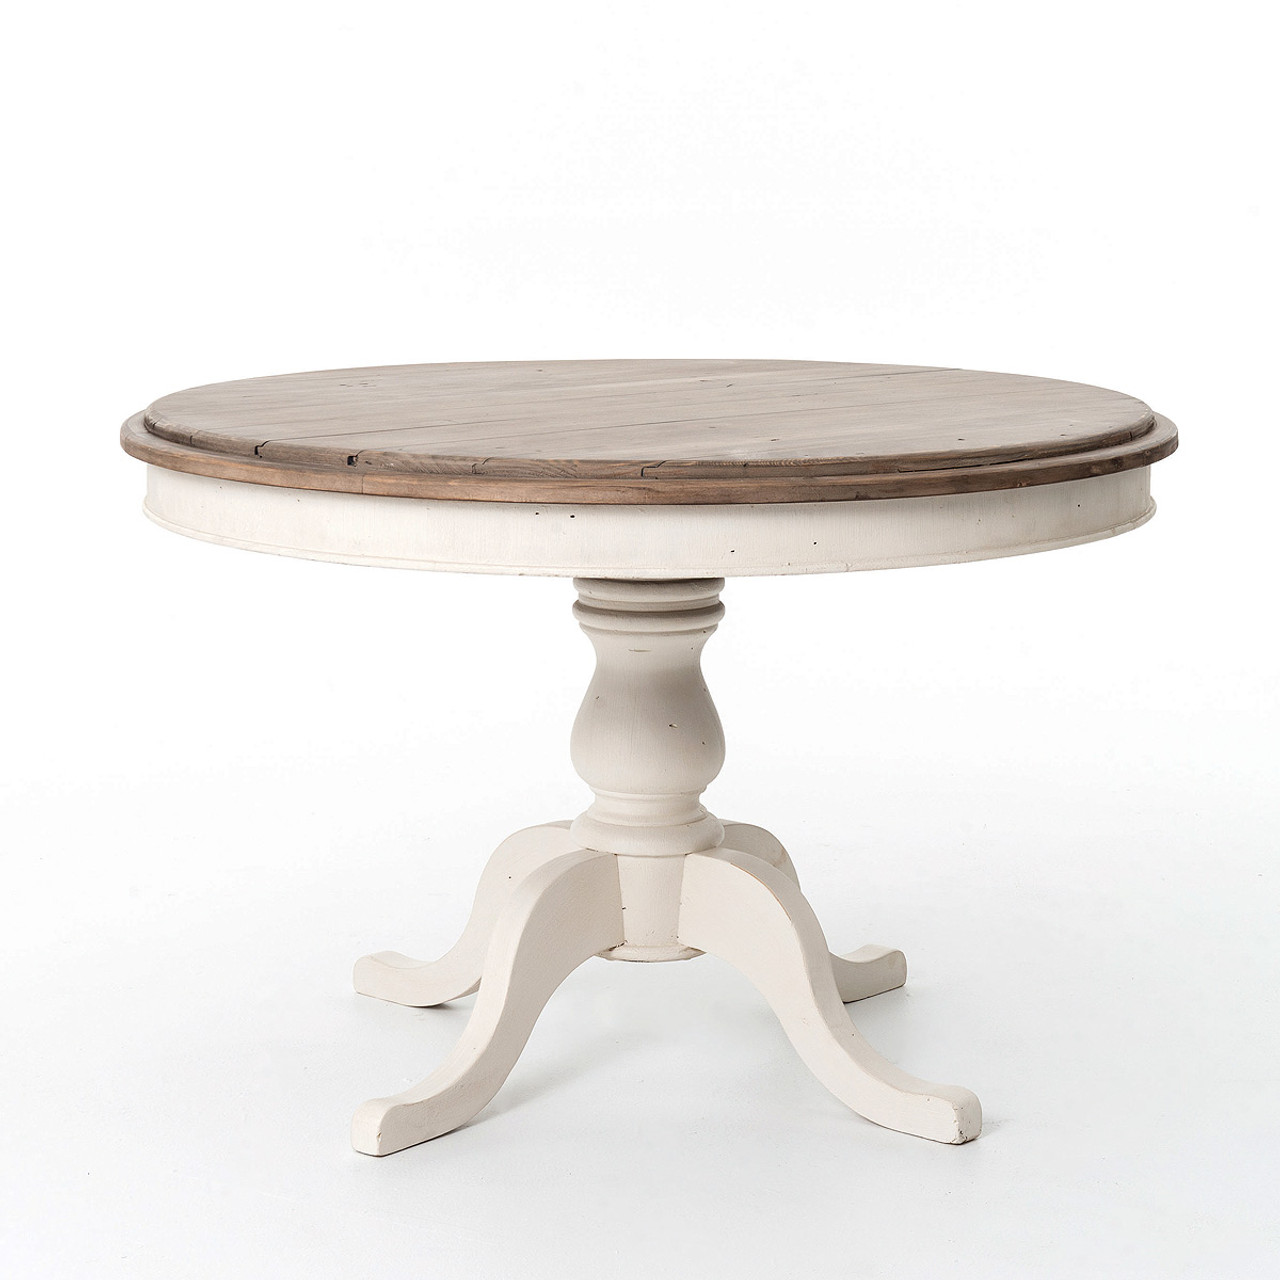 Round Wood Kitchen Tables Cottage round pedestal white kitchen table 47 zin home cottage round pedestal reclaimed solid wood kitchen table 47 in white workwithnaturefo